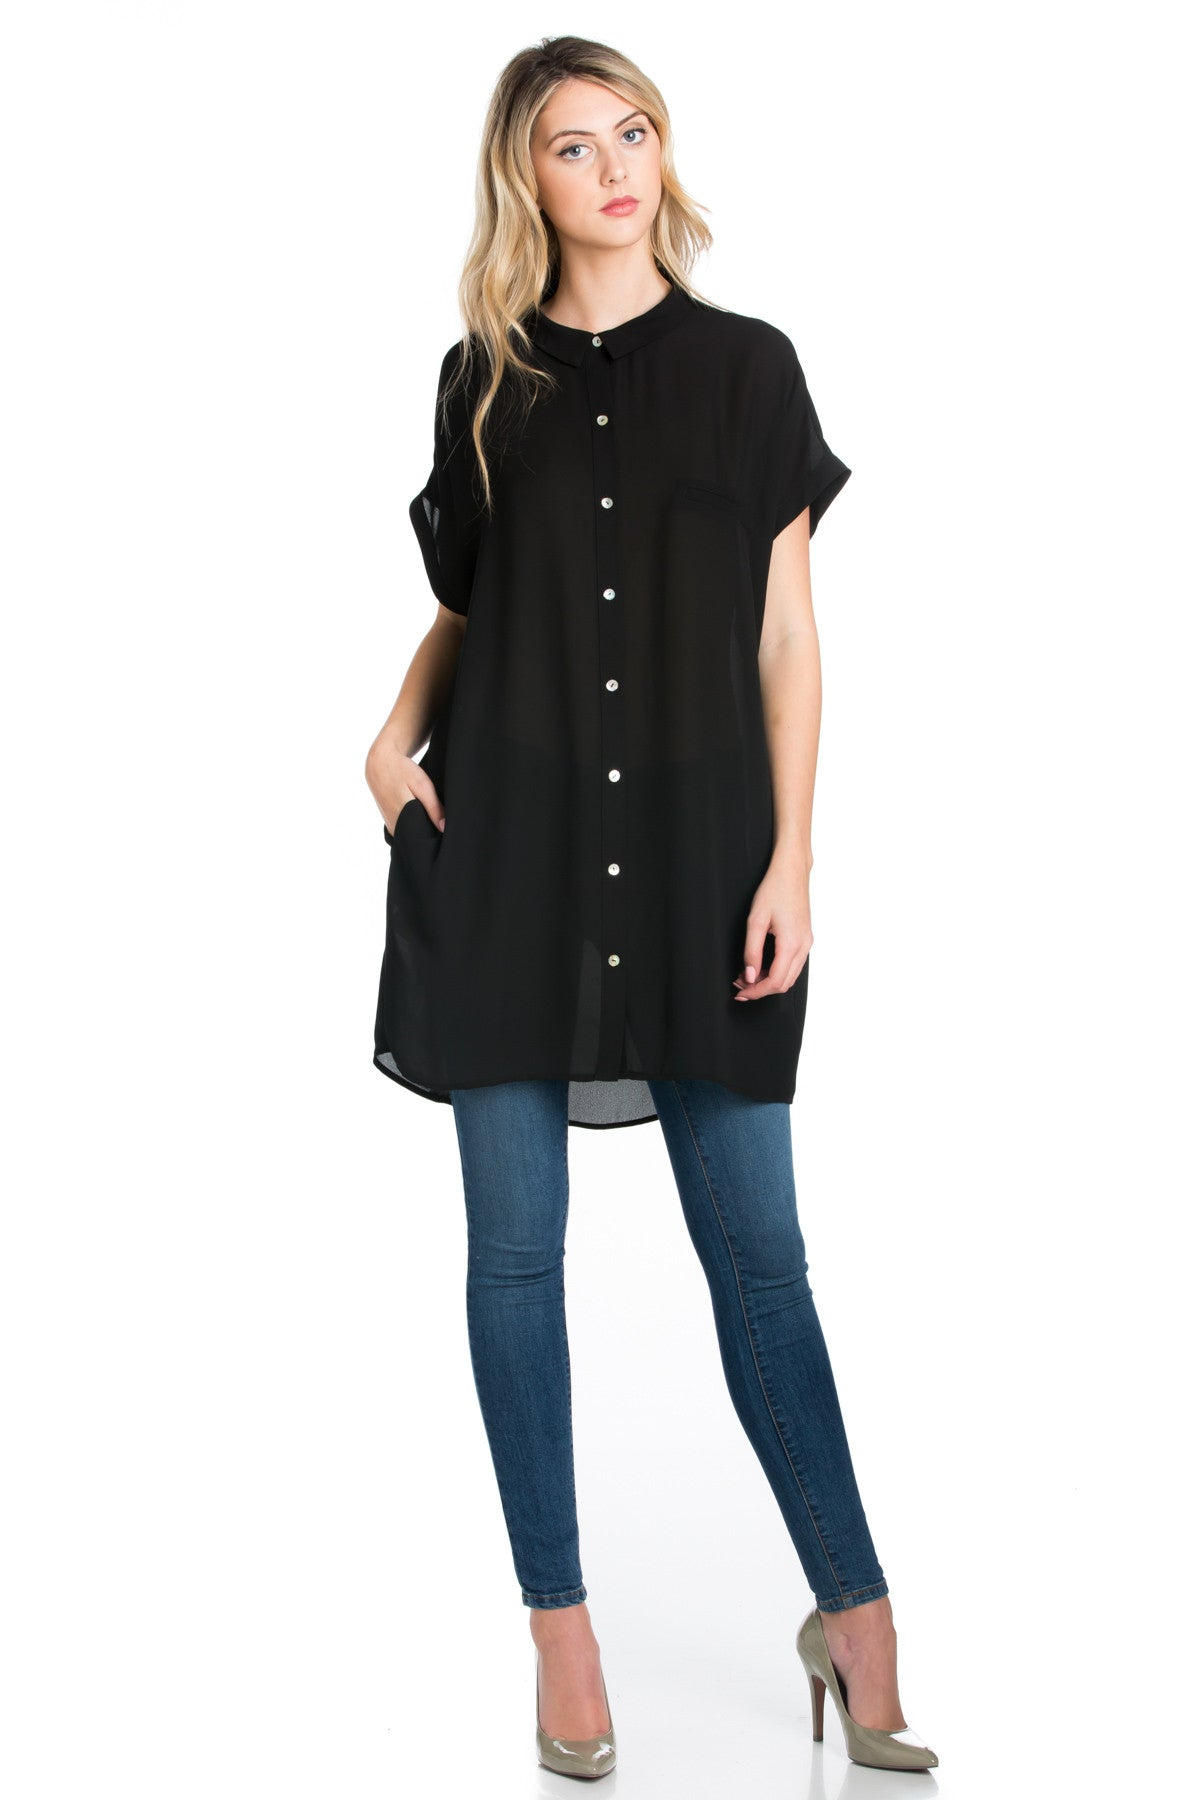 1974cc296c4 Short Sleeve Longline Button Down Chiffon Top in Black - Tops - My Yuccie -  1